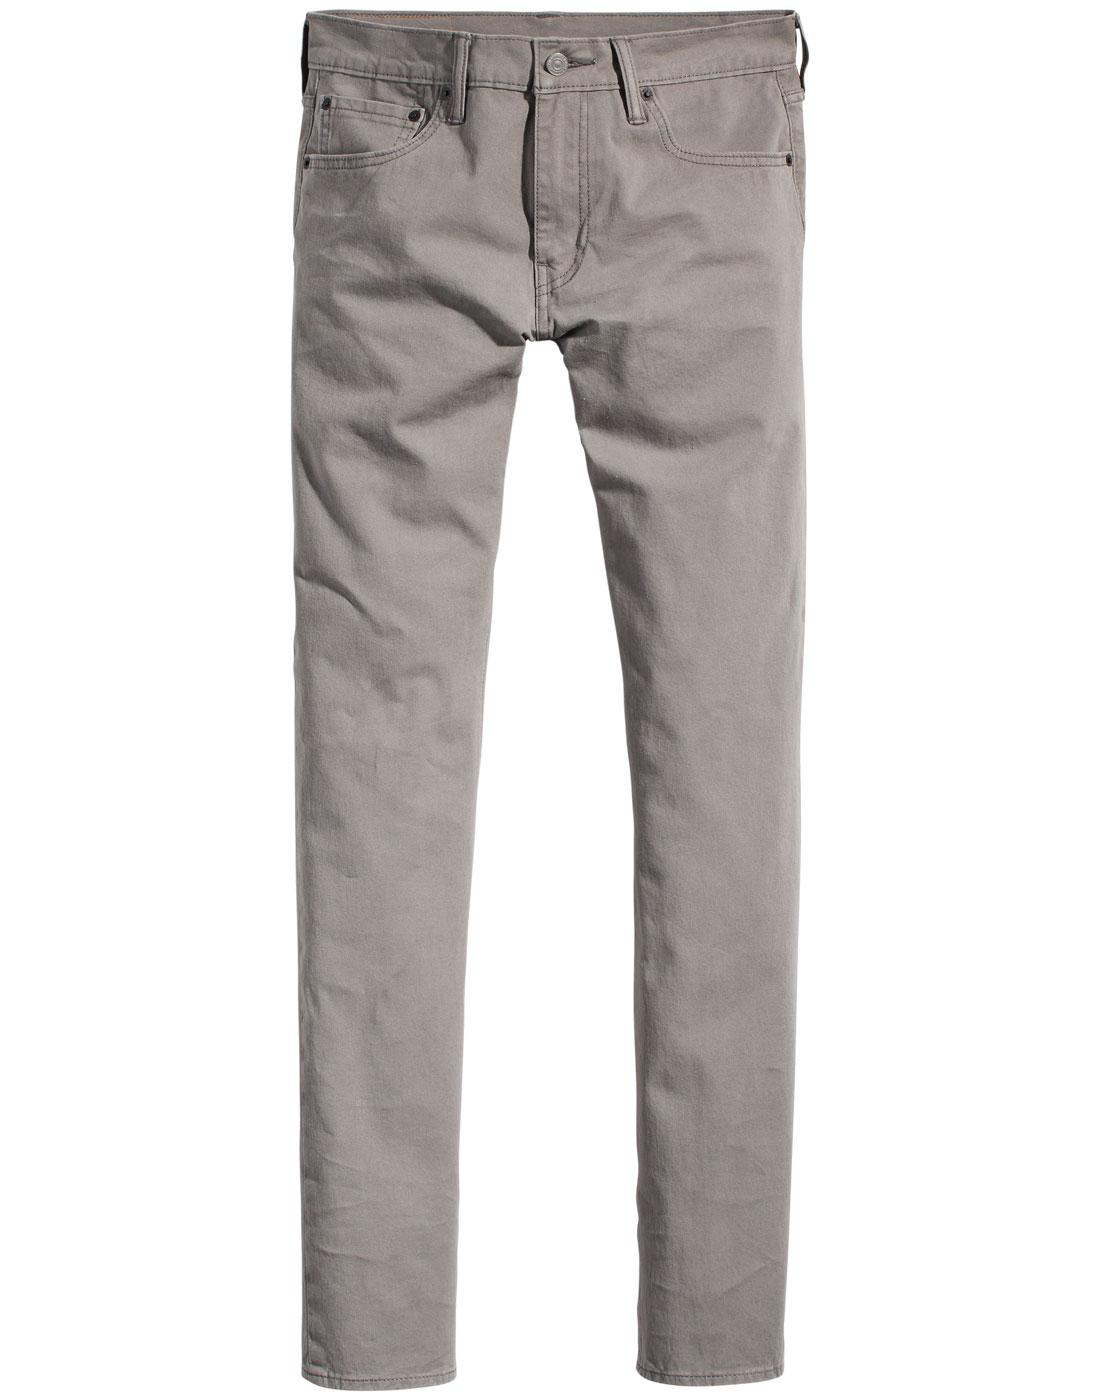 LEVI'S 511 Men's Retro Slim Fit Chinos STEEL GREY